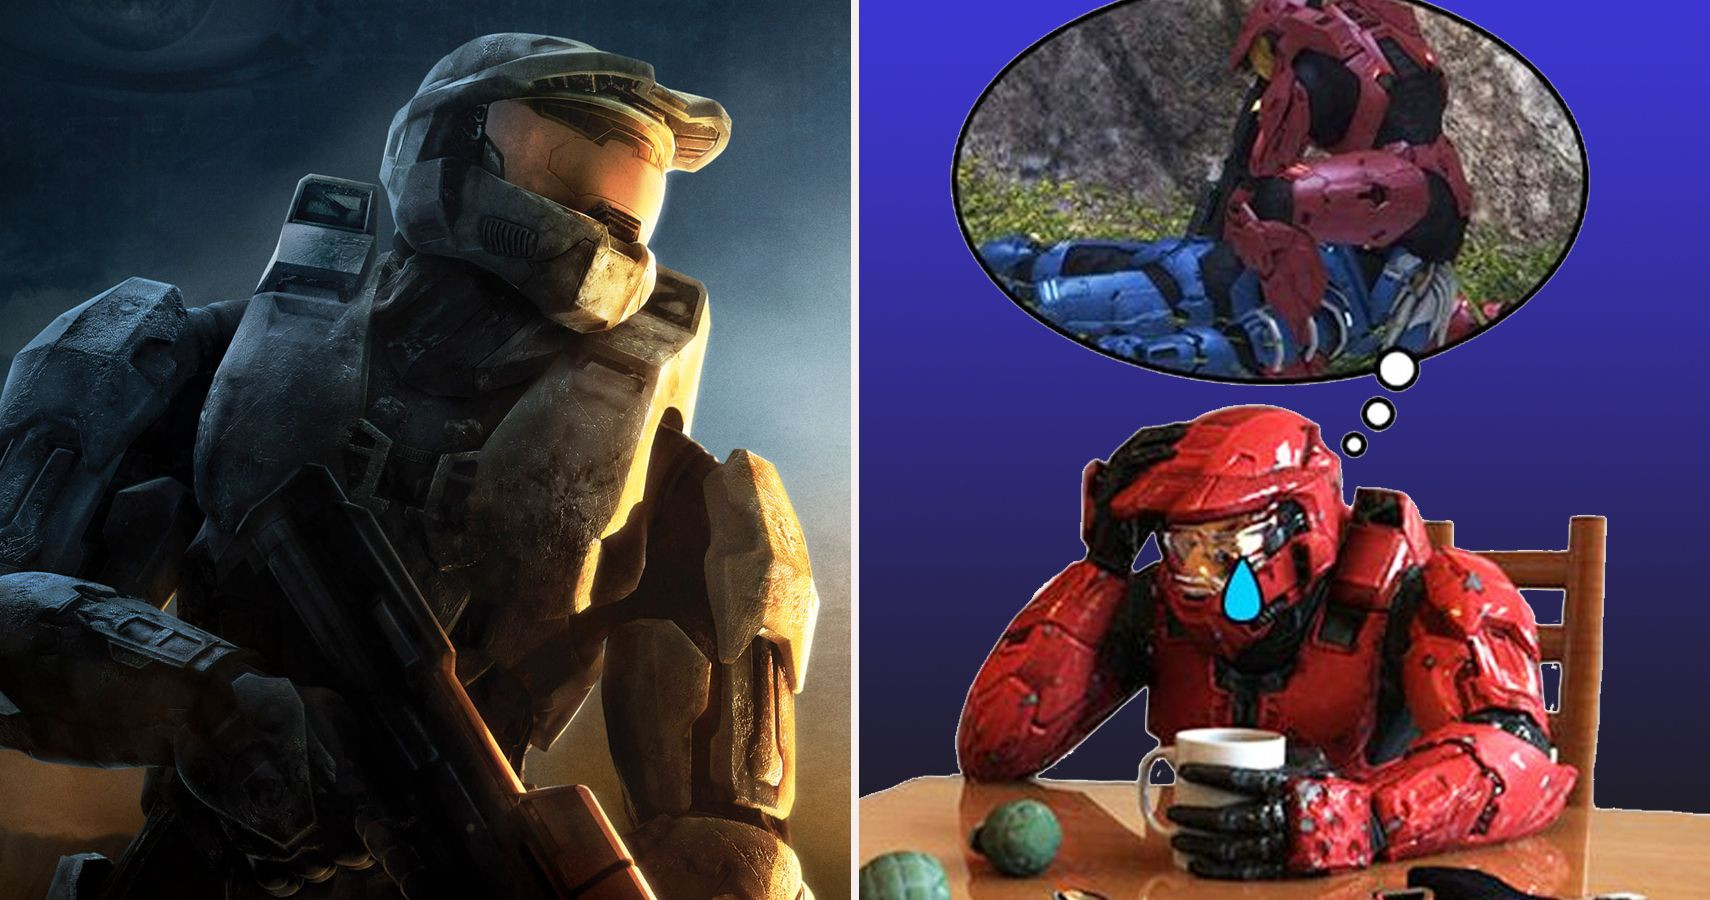 15 Reasons Why All The Halo Games Are Bad (Except Halo 3)